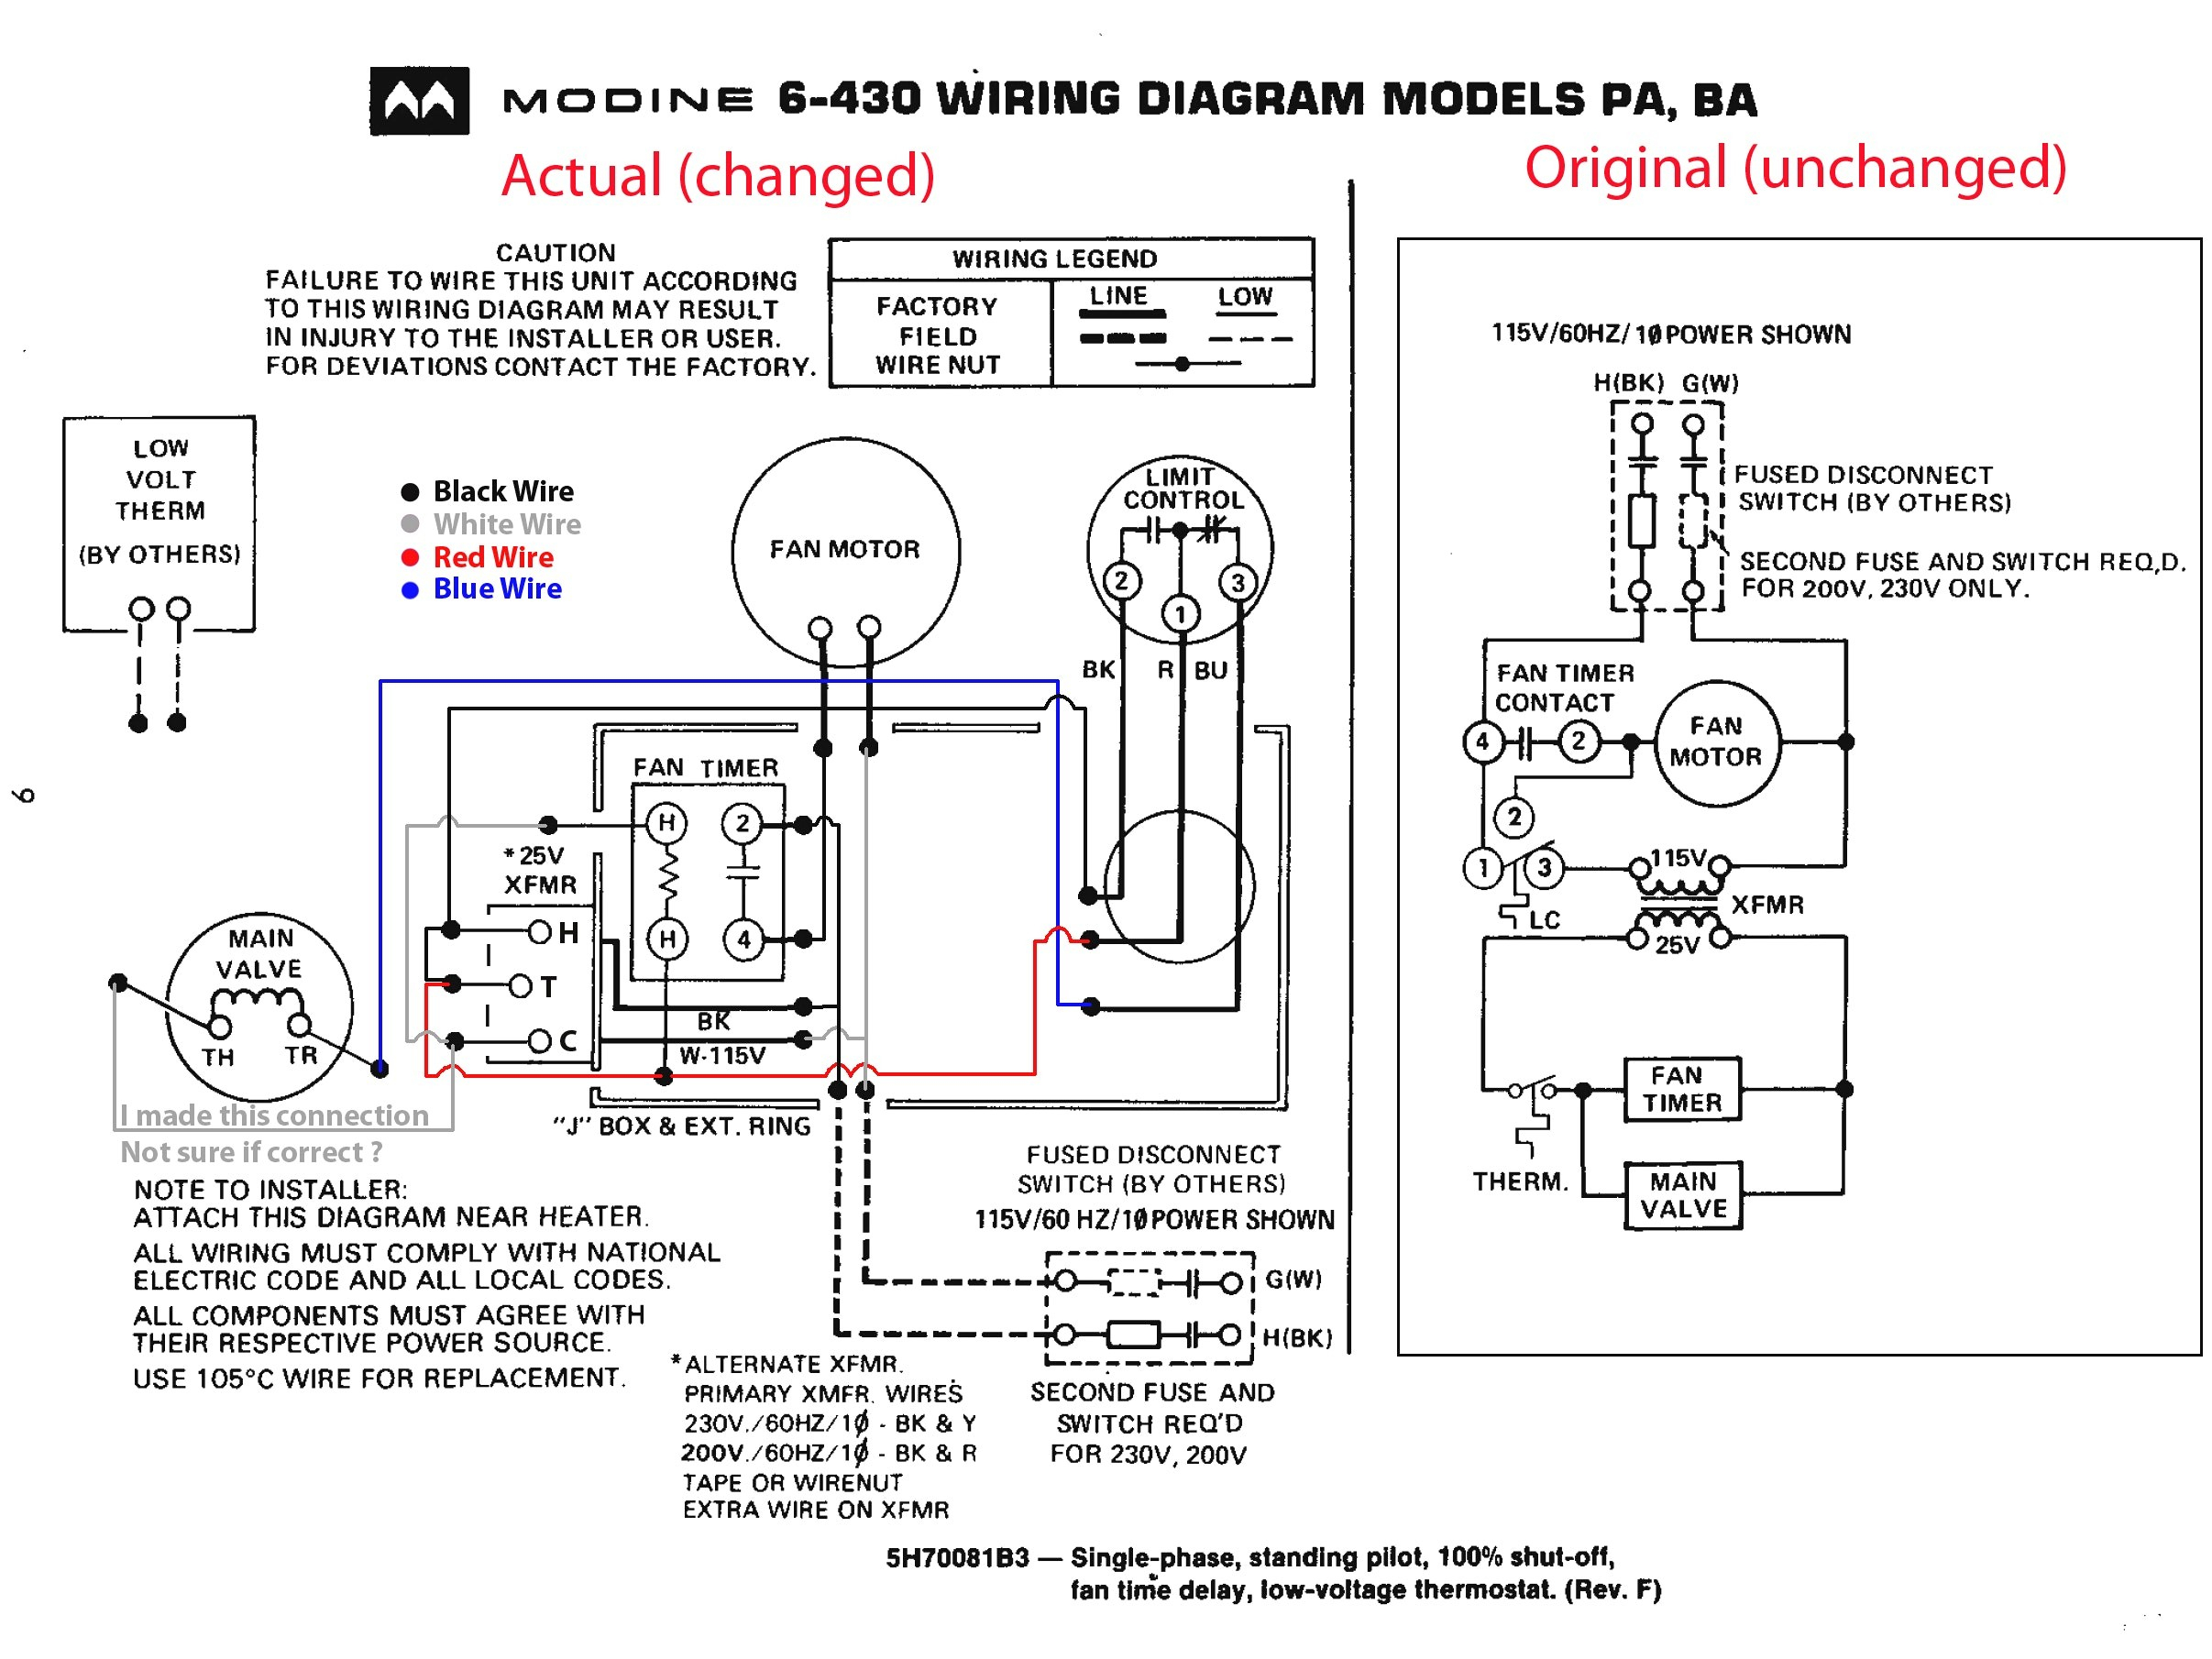 atwood furnace wiring diagram 2006 gulf stream 8540 atwood furnace wiring diagram atwood furnace wiring diagram sample #2